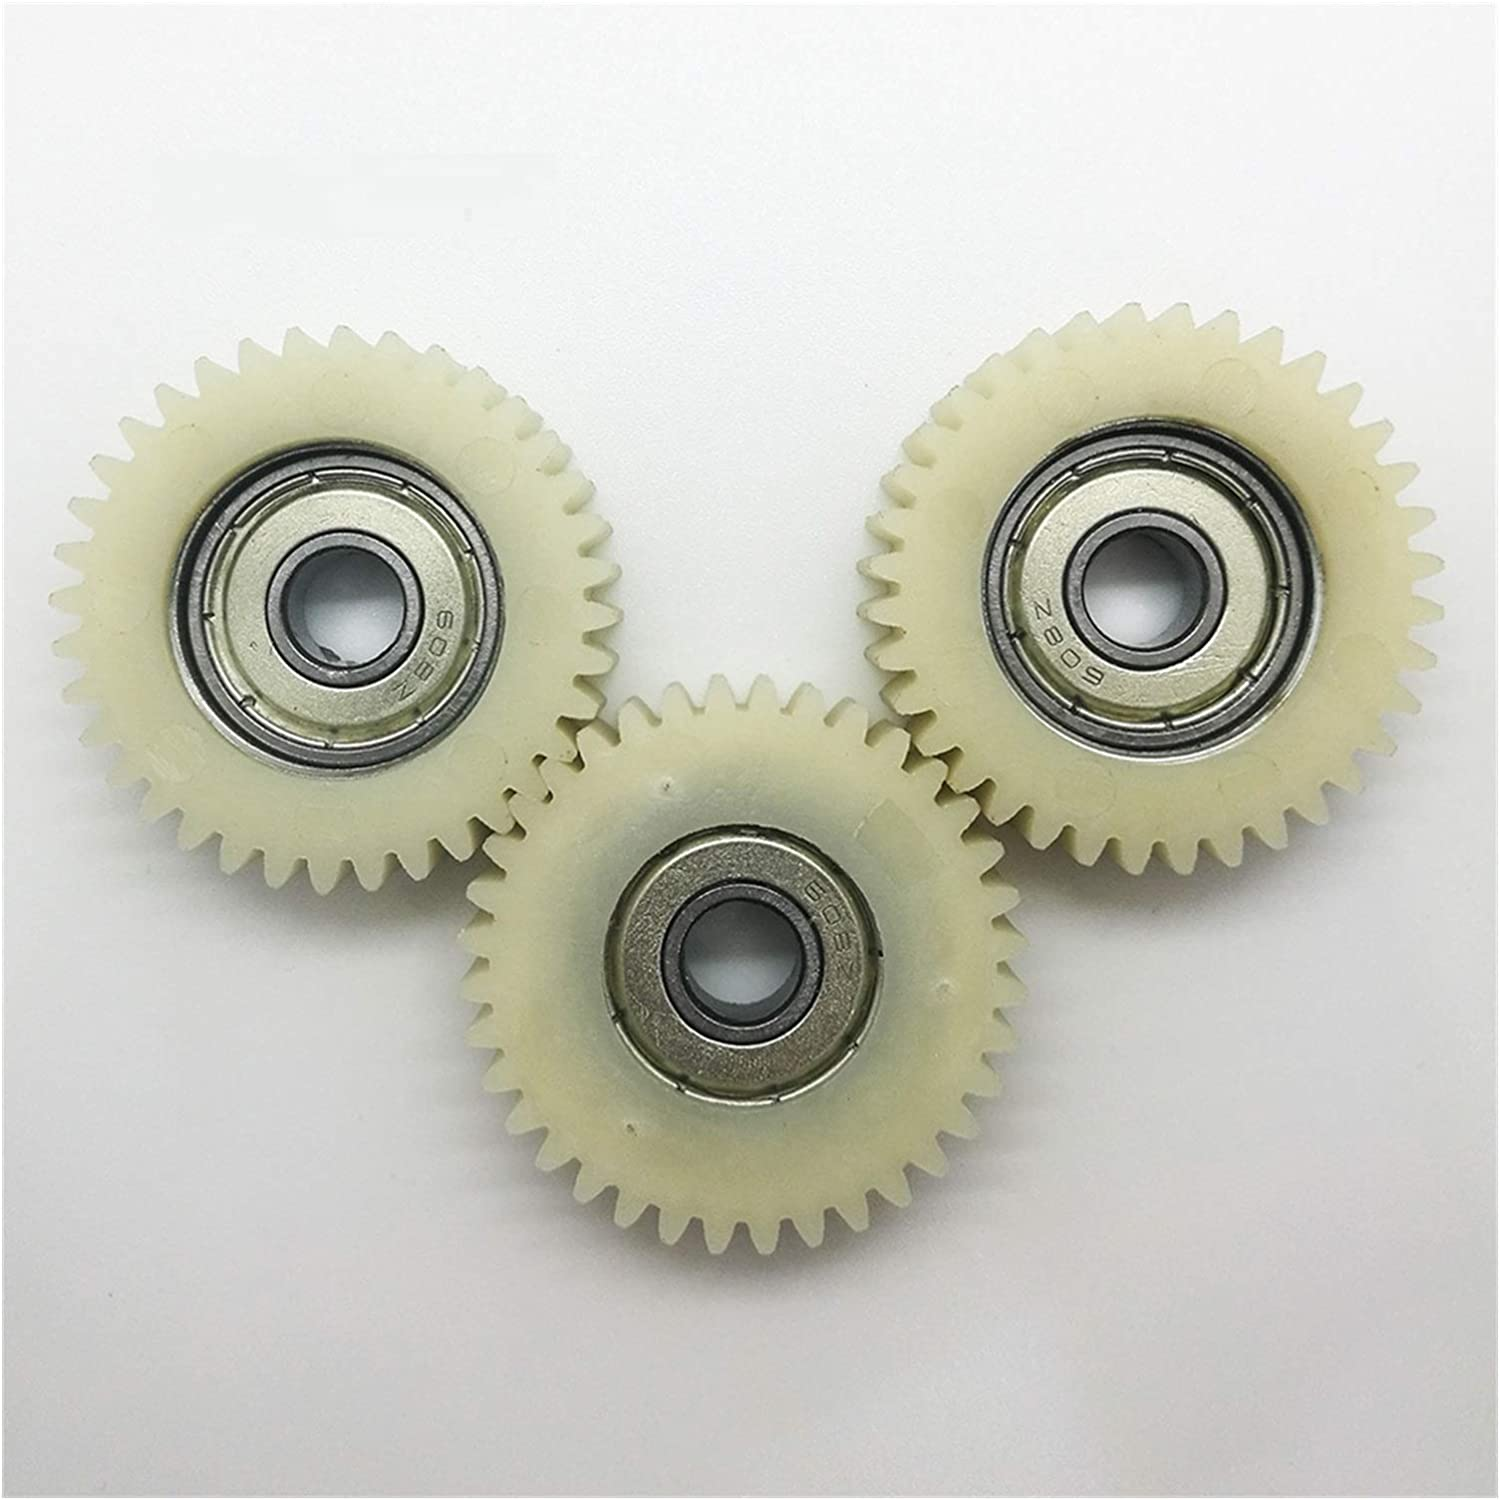 TONGCHAO Tchaogr 3pcs Excellence Gears 38mm Credence 36 8mm Bore Hole Nylon 60 Teeth